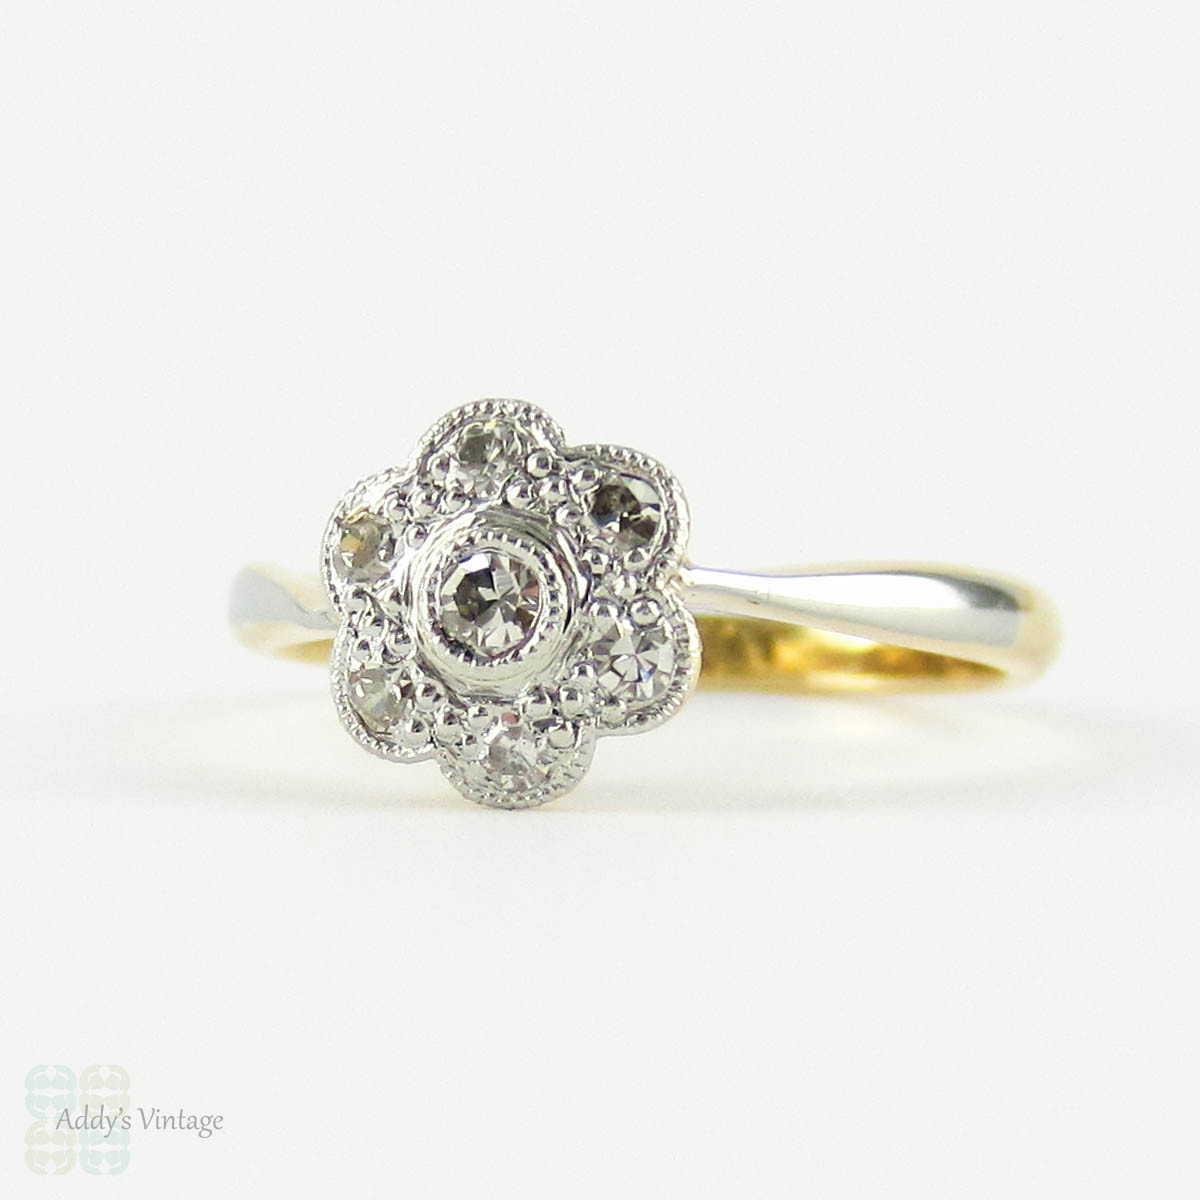 Antique Floral Diamond Ring Daisy Flower Shape Diamond